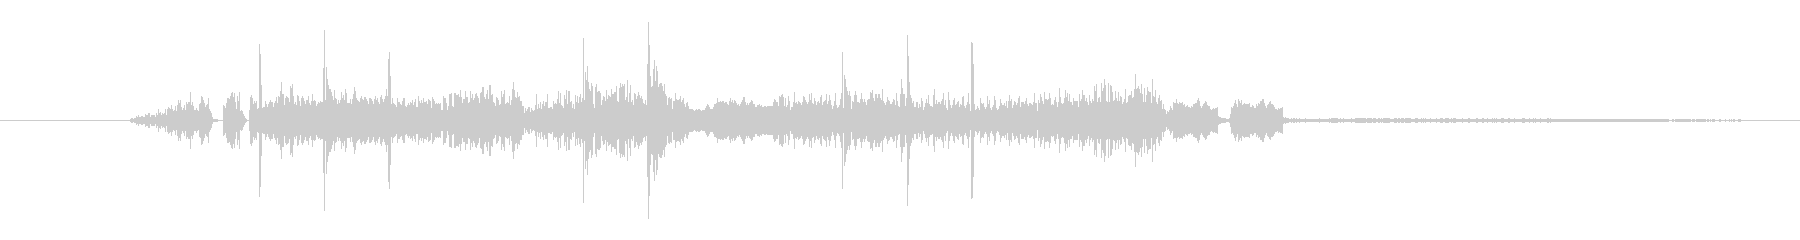 A refreshing and futuristic jingle's unreproduced waveform